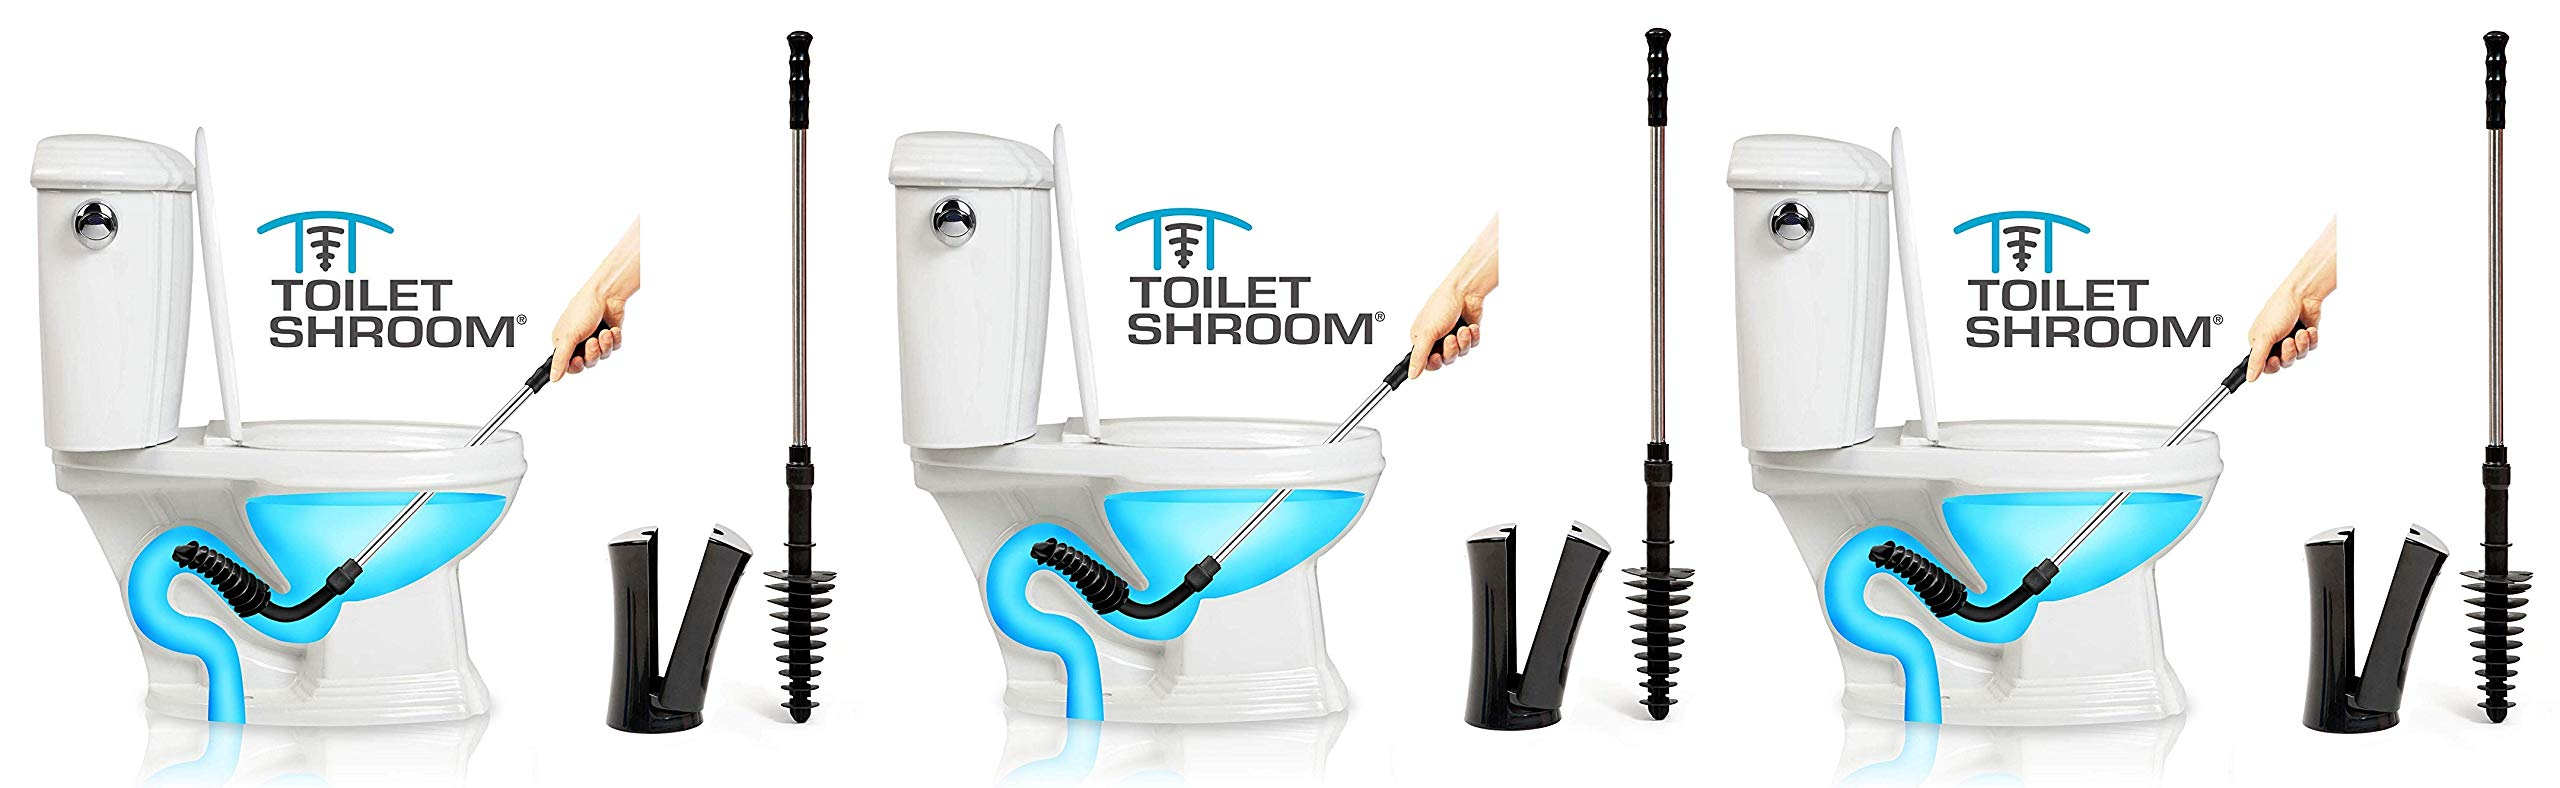 ToiletShroom Revolutionary Plunger, Squeegee, Clog Remover, Drain Cleaner, Bathroom Toilet Dredge Tool, Stainless Steel Handle with Caddy Holder, Black (Тhree Pаck)